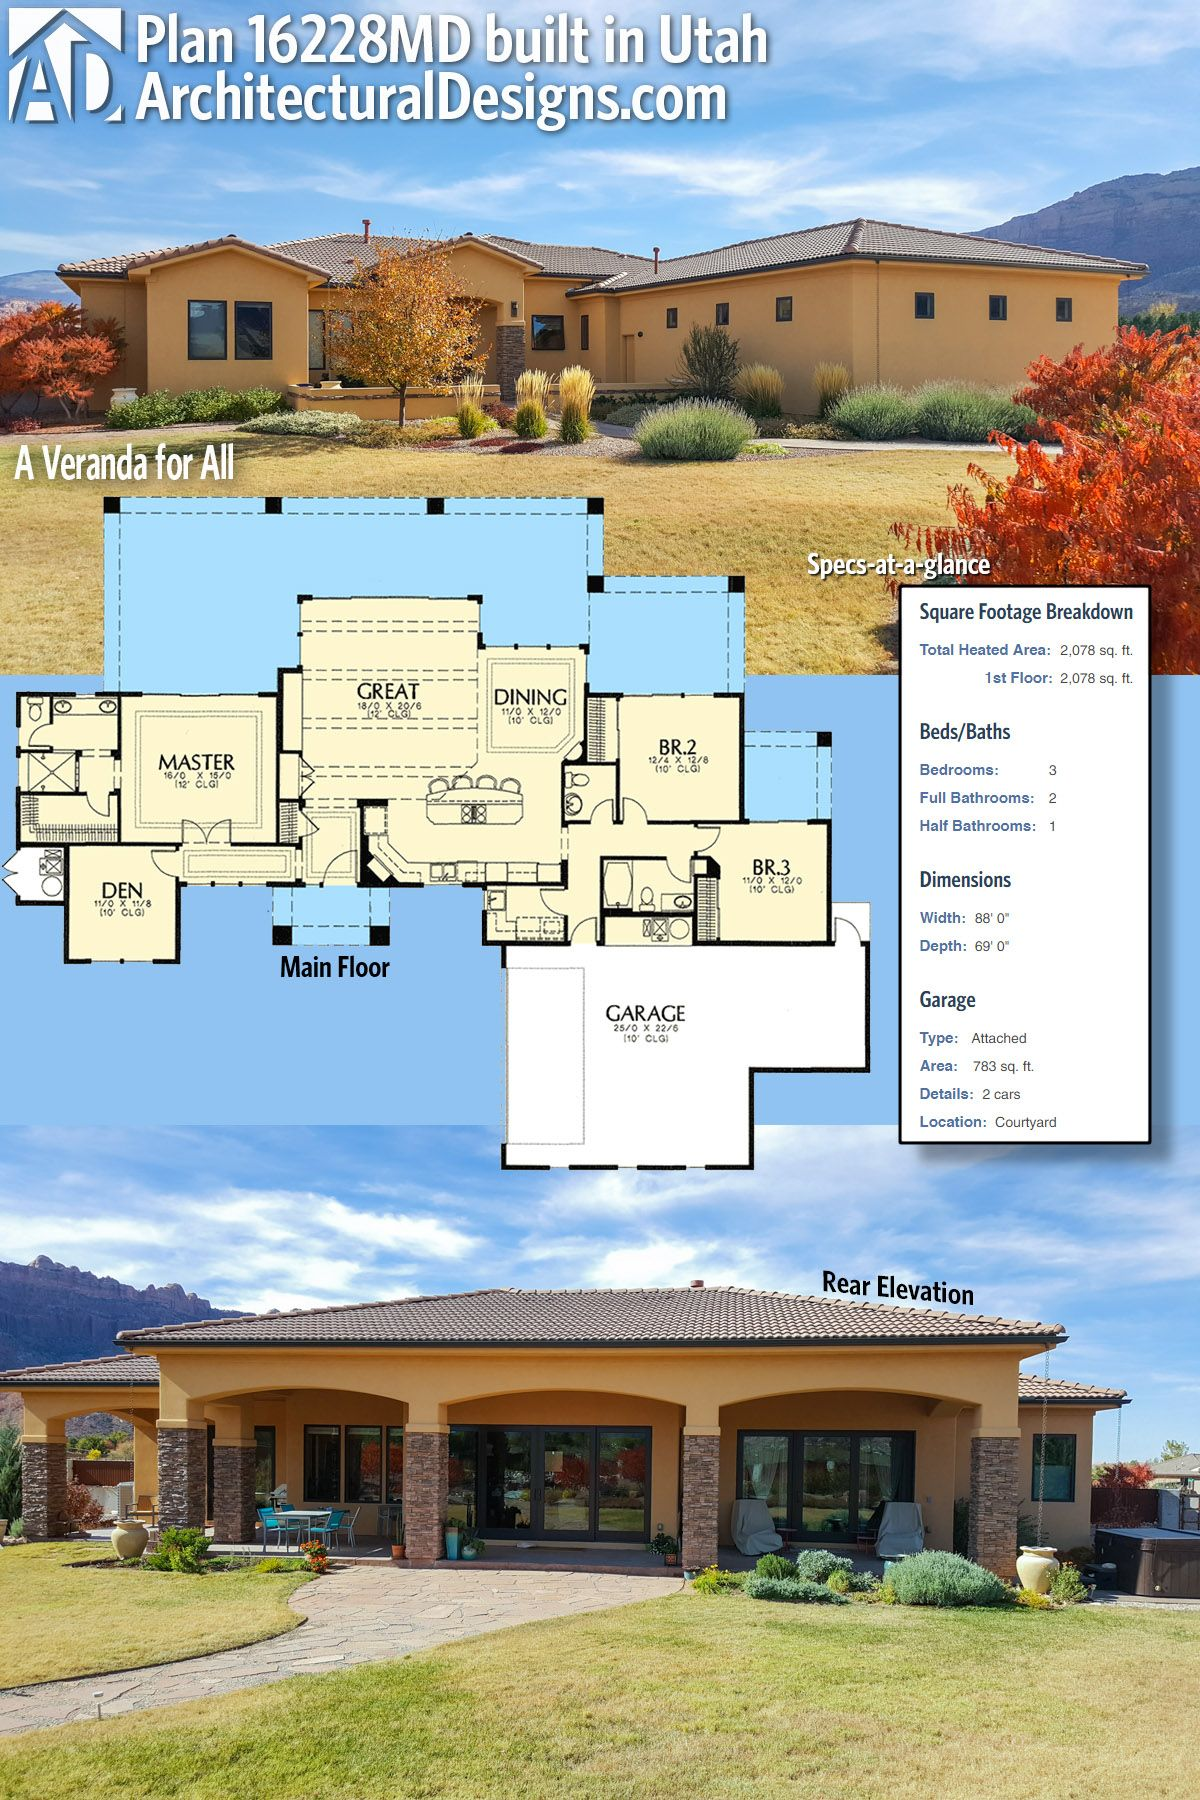 Our Client Built Architectural Designs Mediterranean House Plan 16228md In Utah This Plan Has A Large Co Craftsman House Plan Exclusive House Plan How To Plan